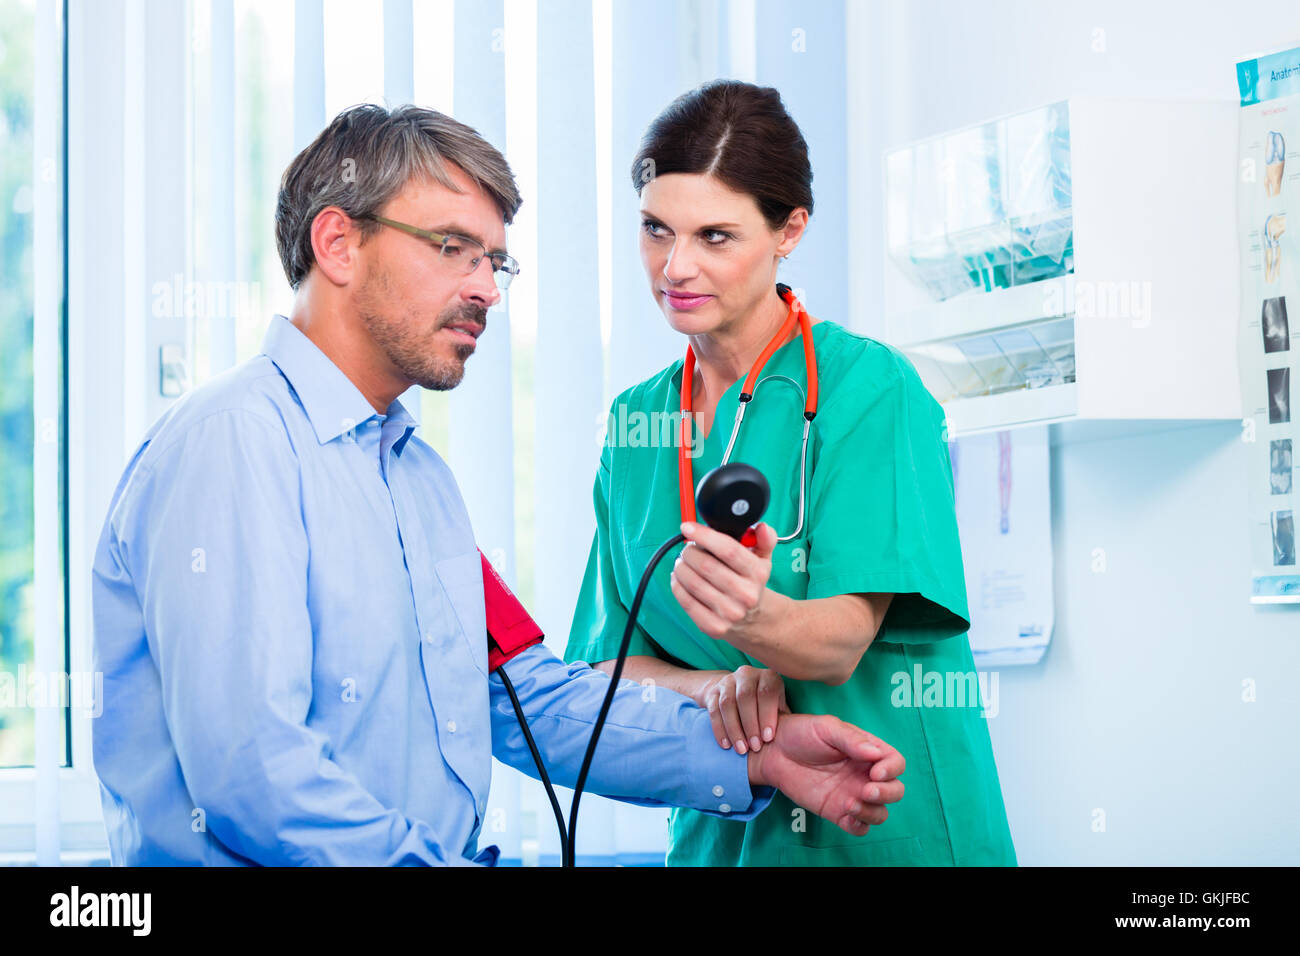 orthopedist examined patient at hand - Stock Image